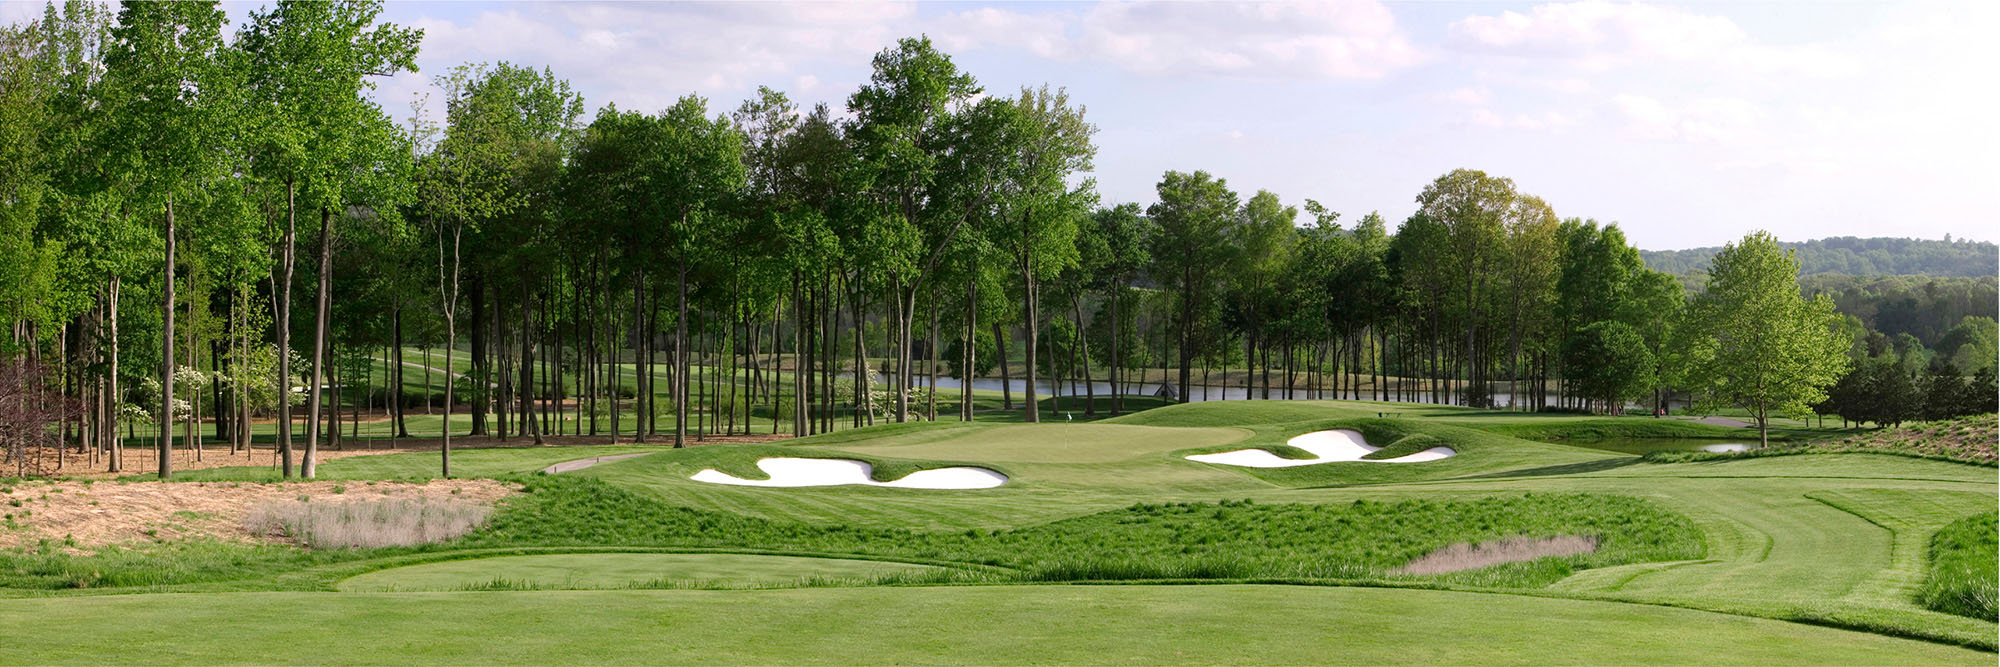 Golf Course Image - Caves Valley Golf Club No. 8